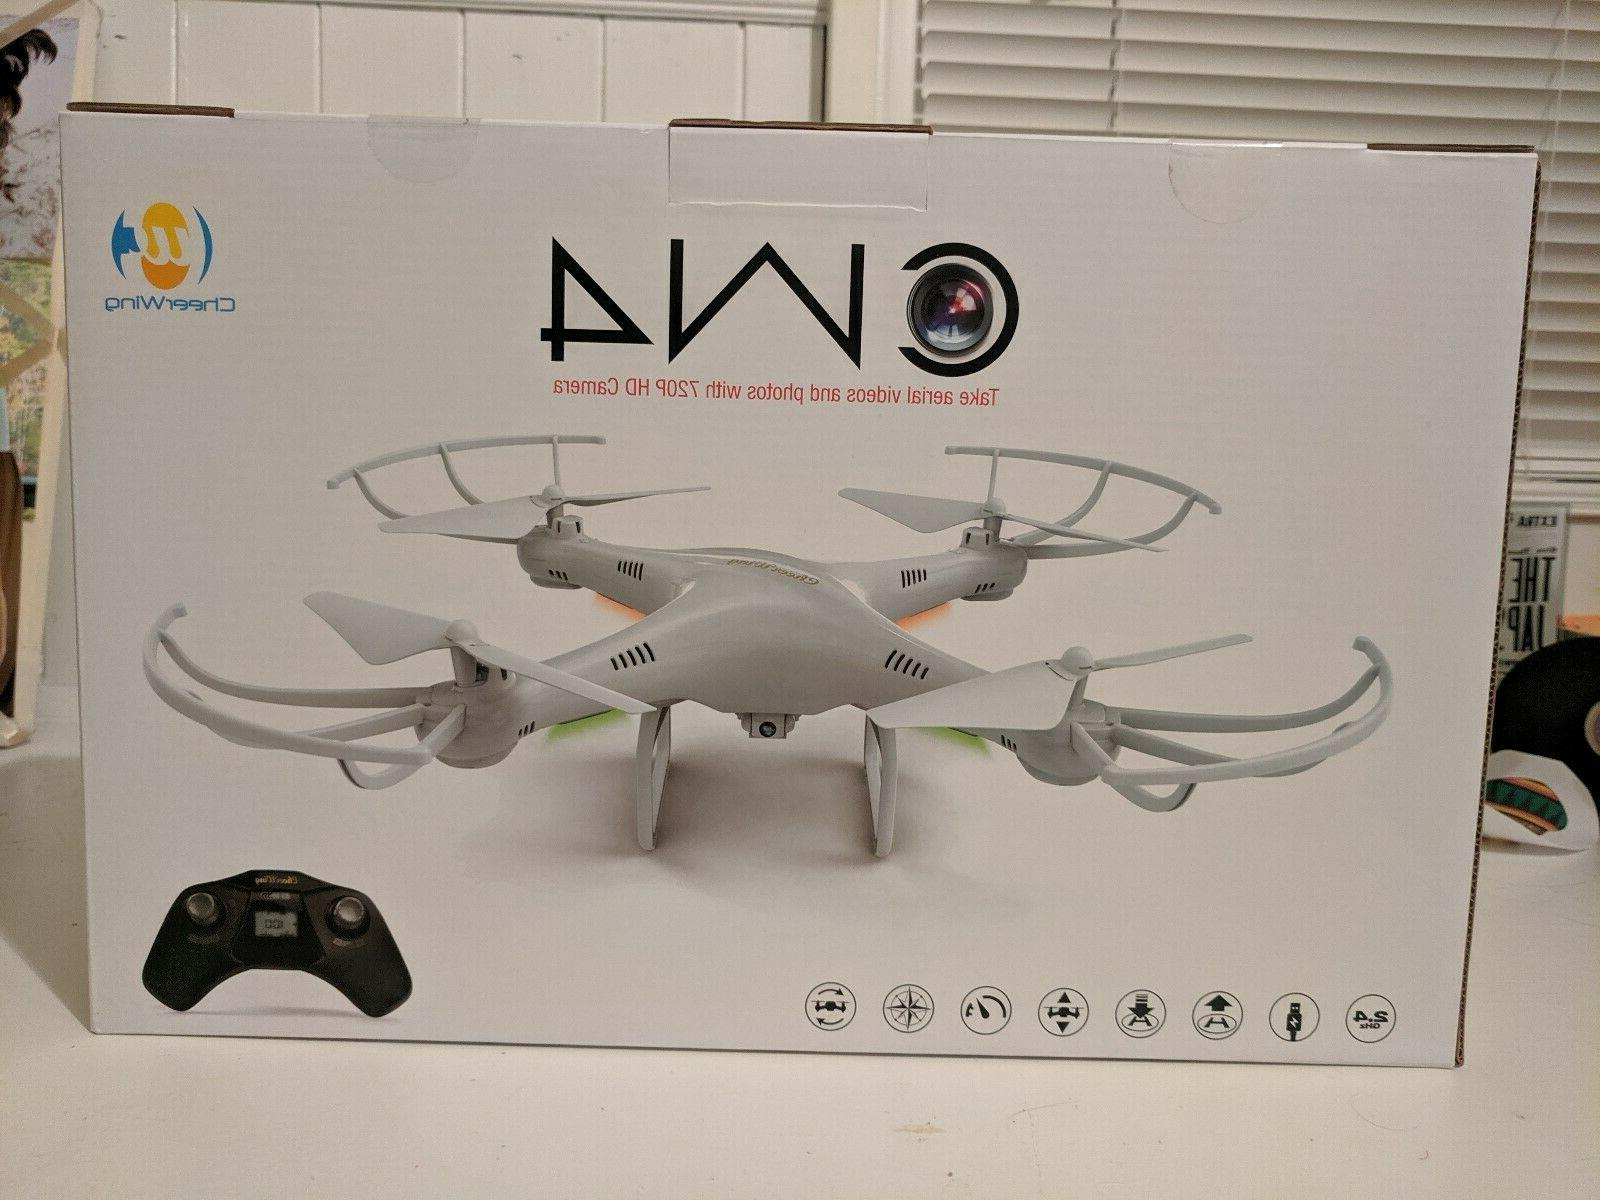 cw4 aerial drone with 720p hd camera